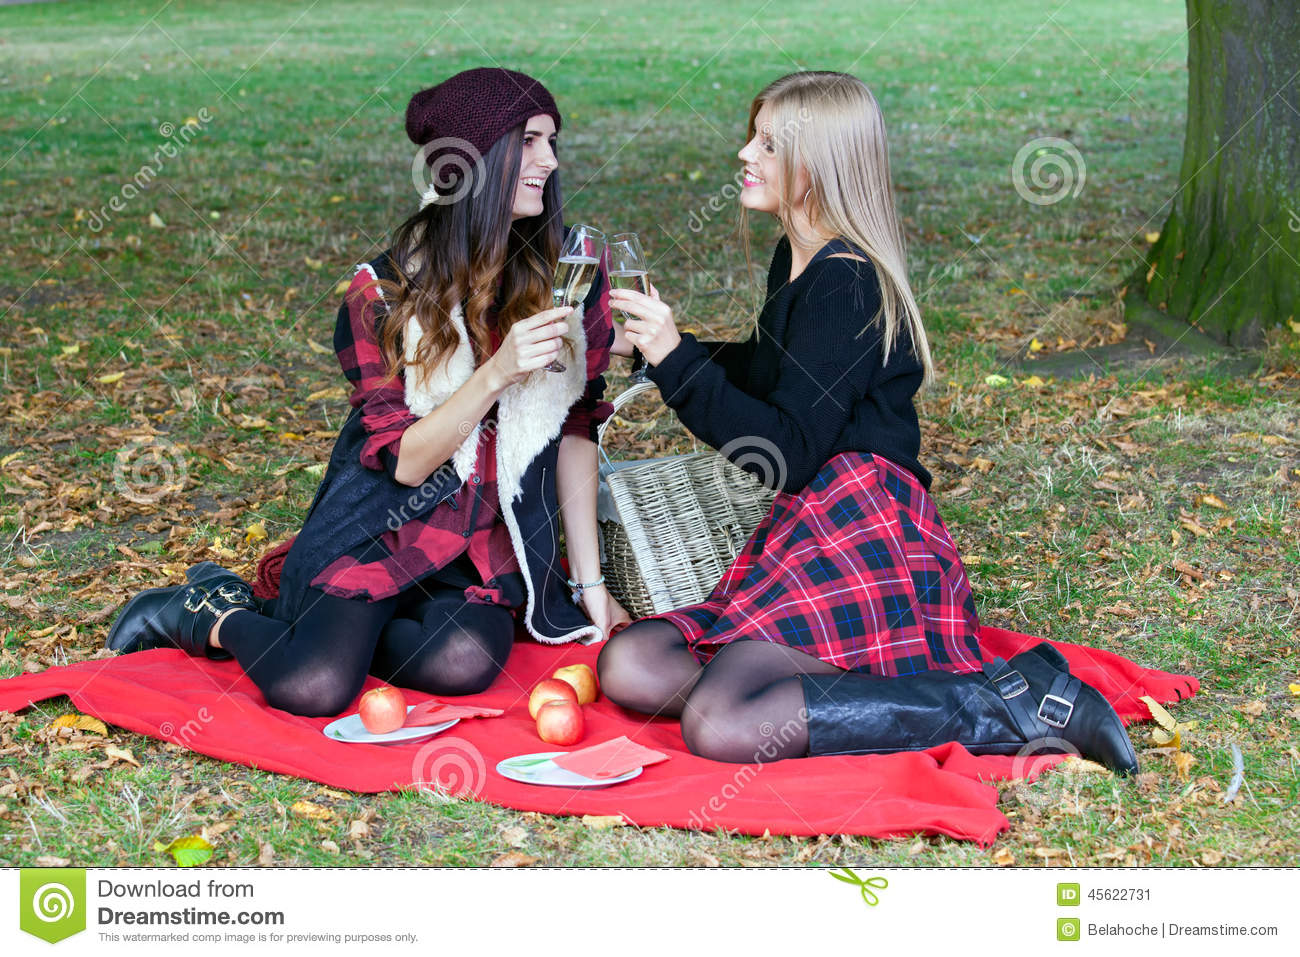 Two Preteen Girls Having A Picnic In A Grassy Field Stock Photo ...